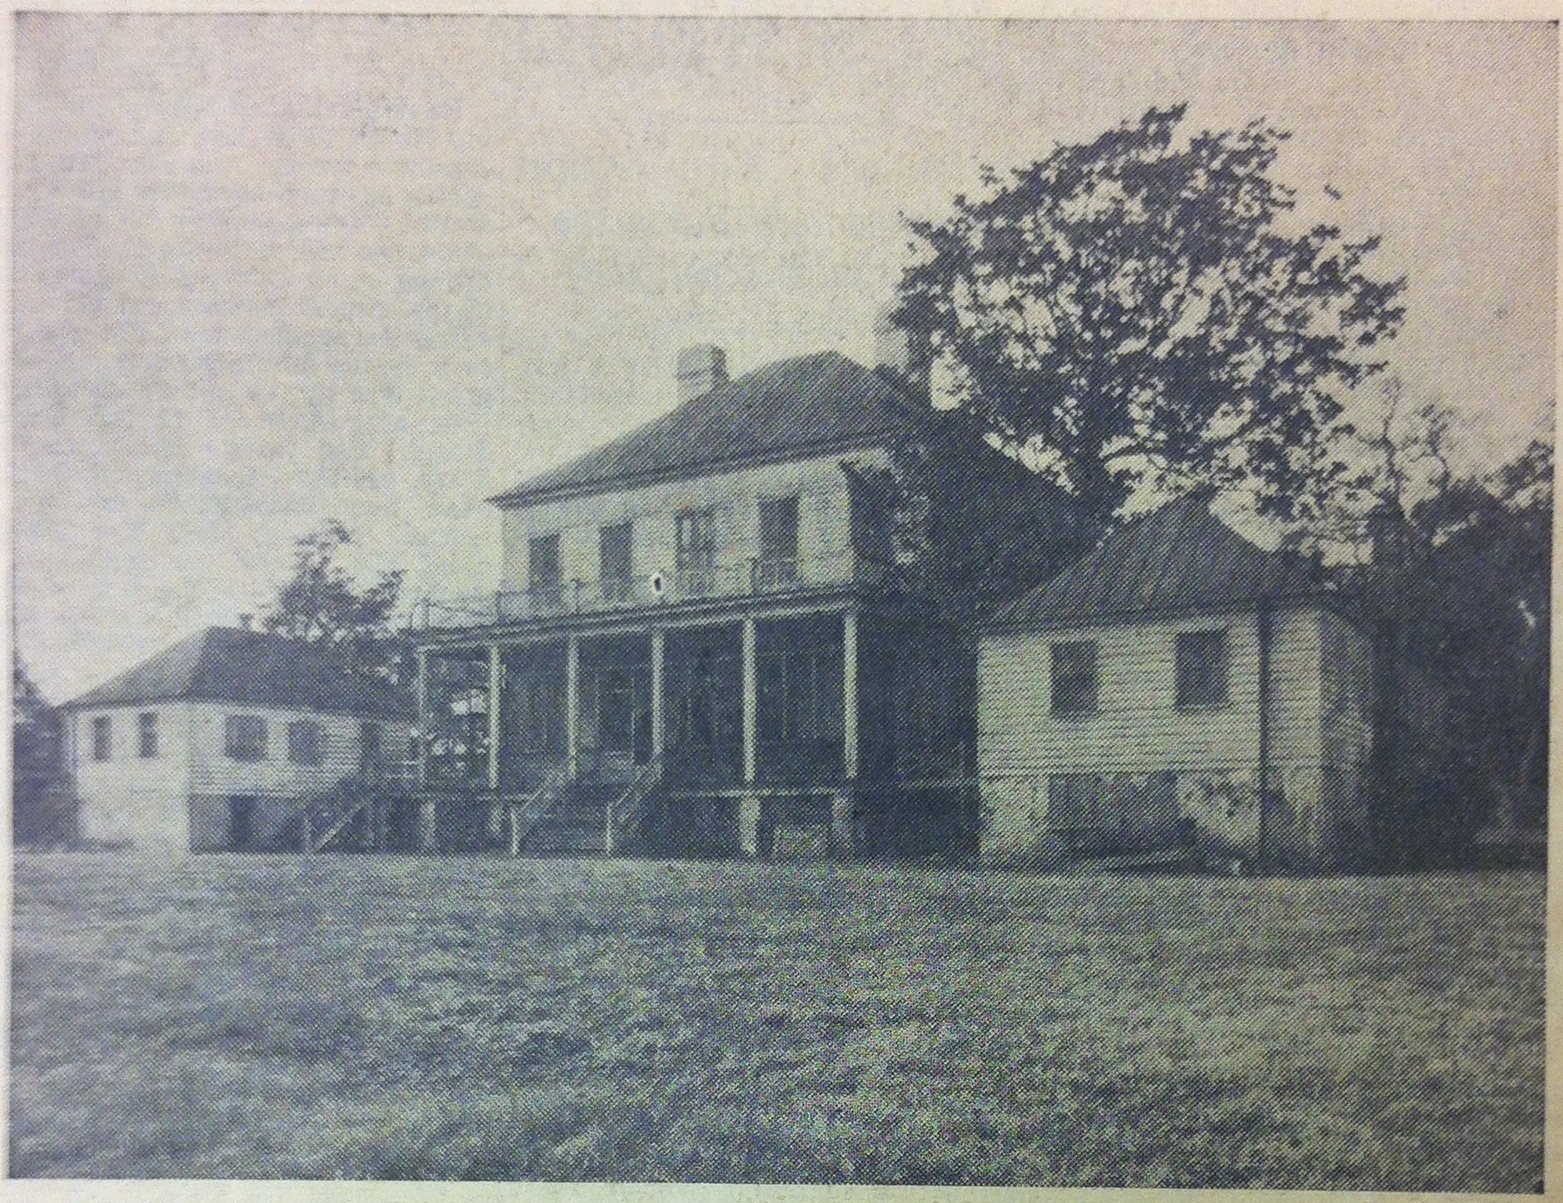 Belvidere farm house, lost